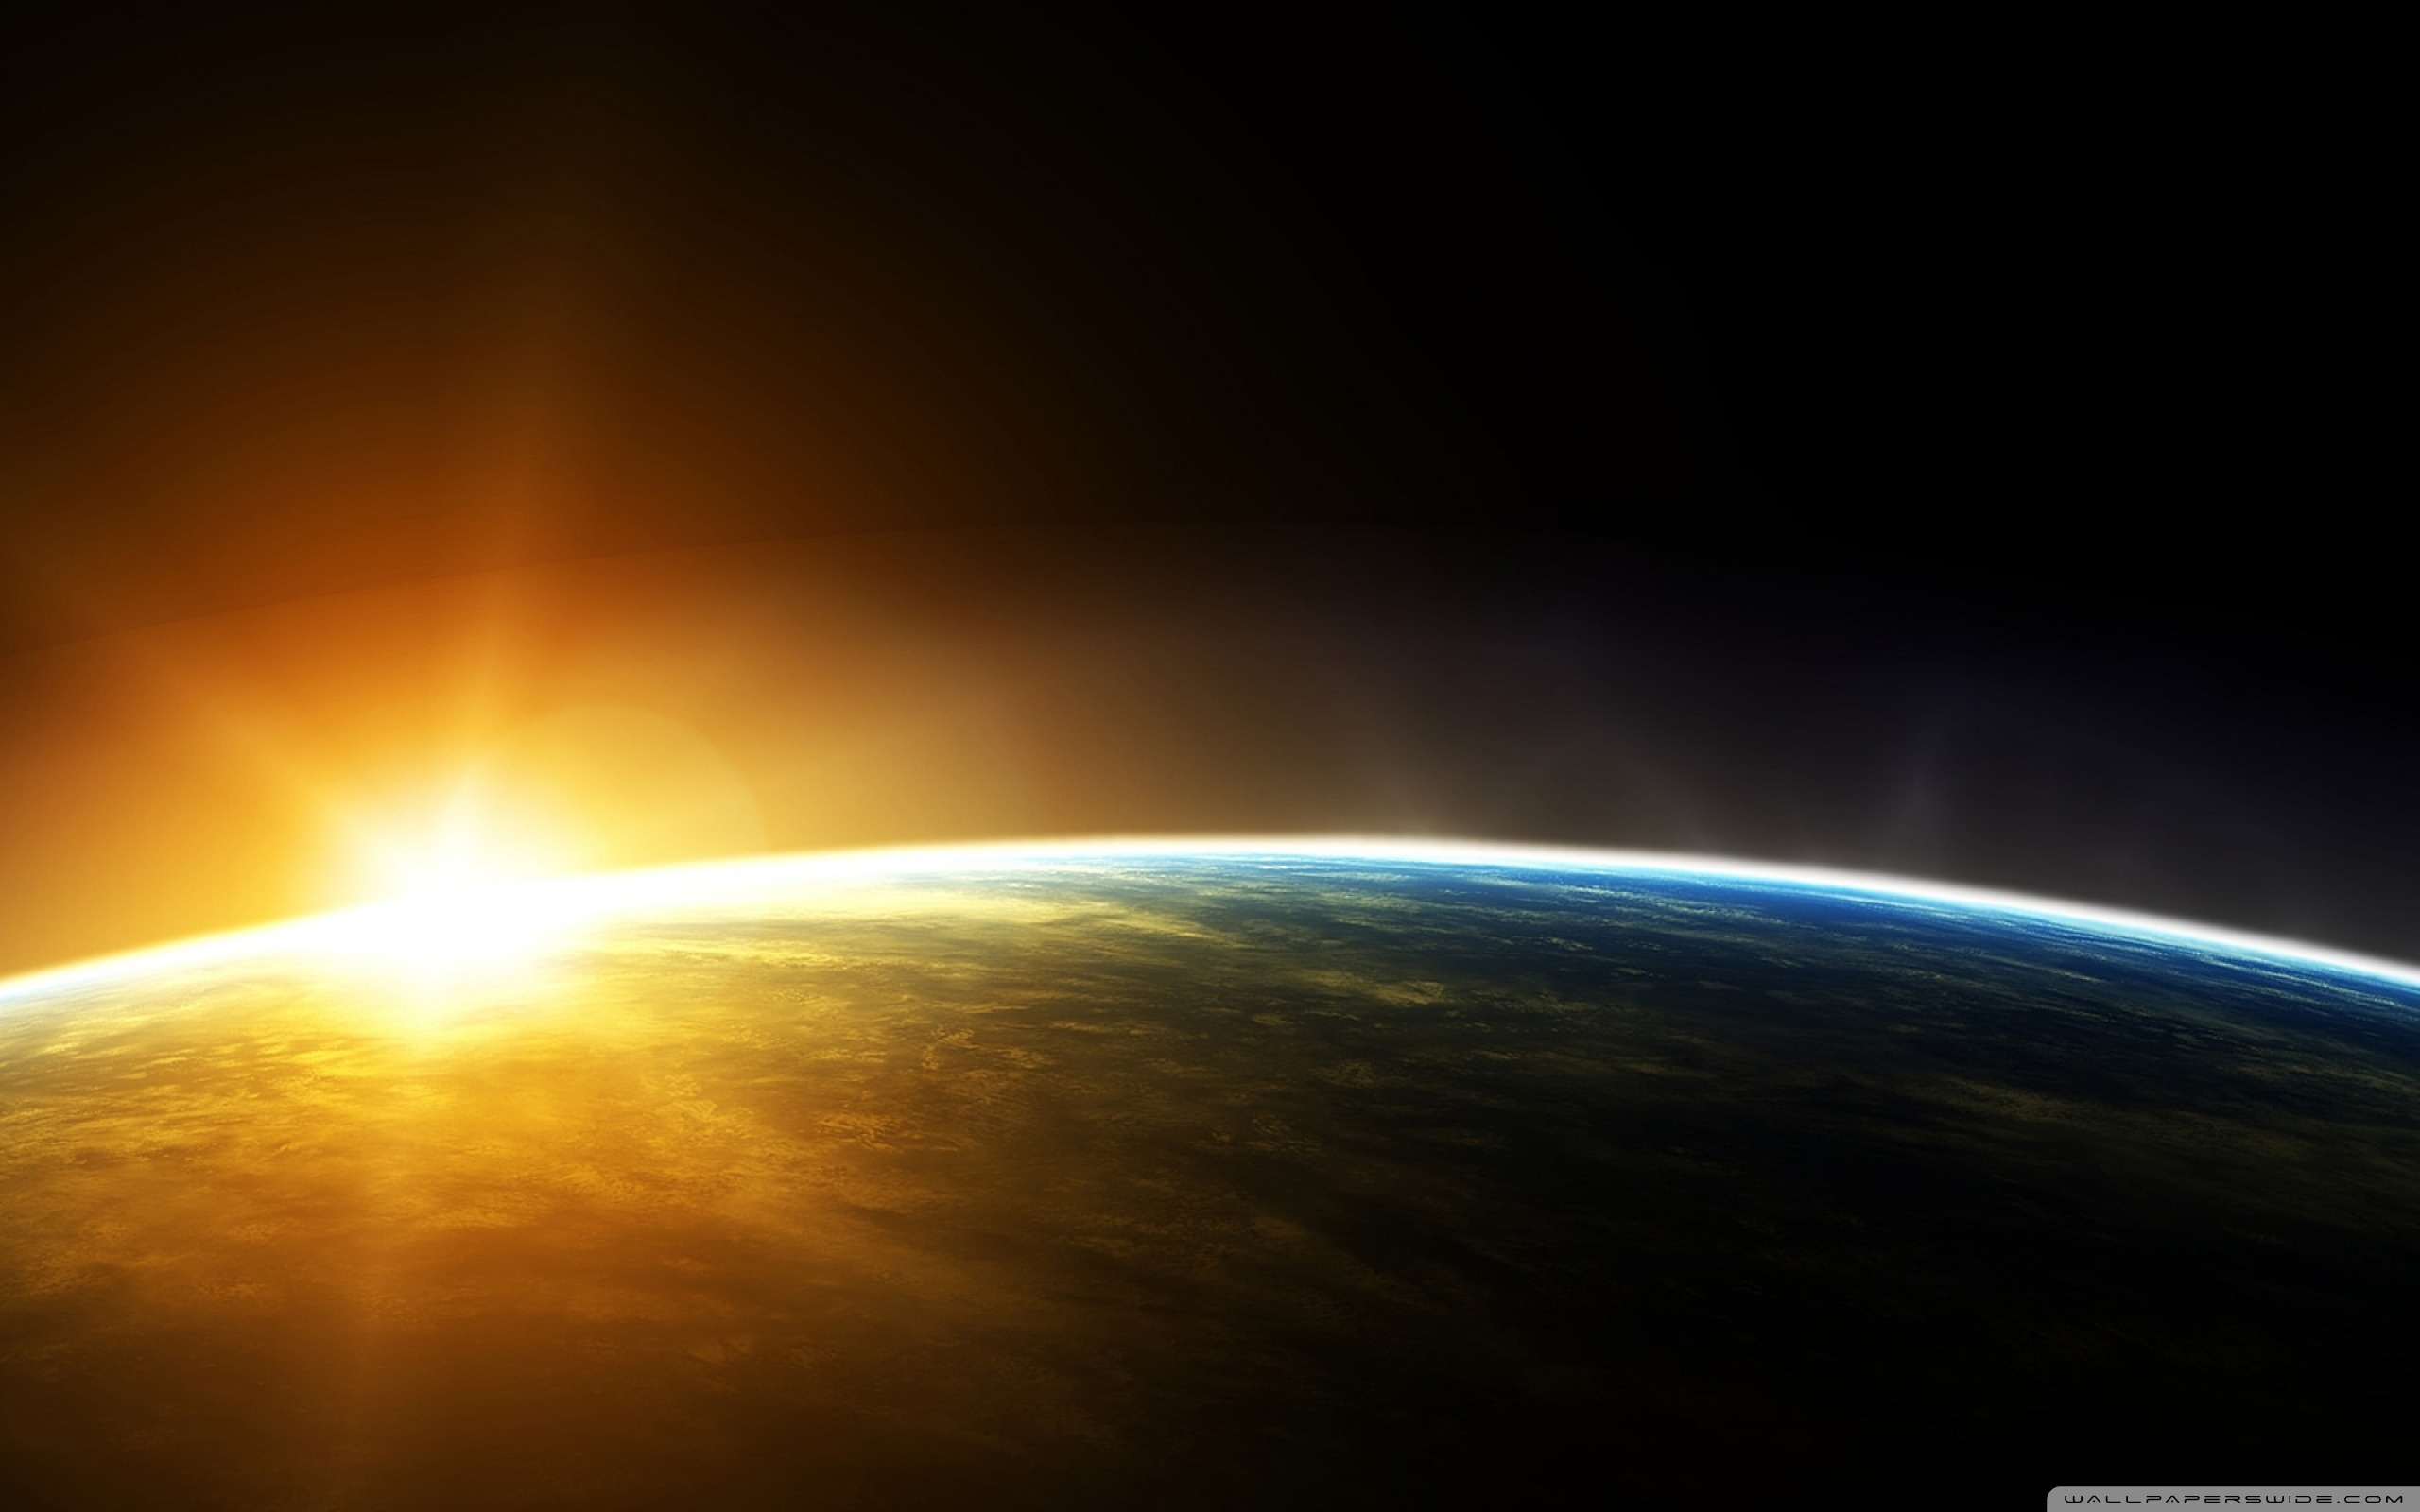 Sunrise Earth Wallpaper Free Desktop 8 HD Wallpapers